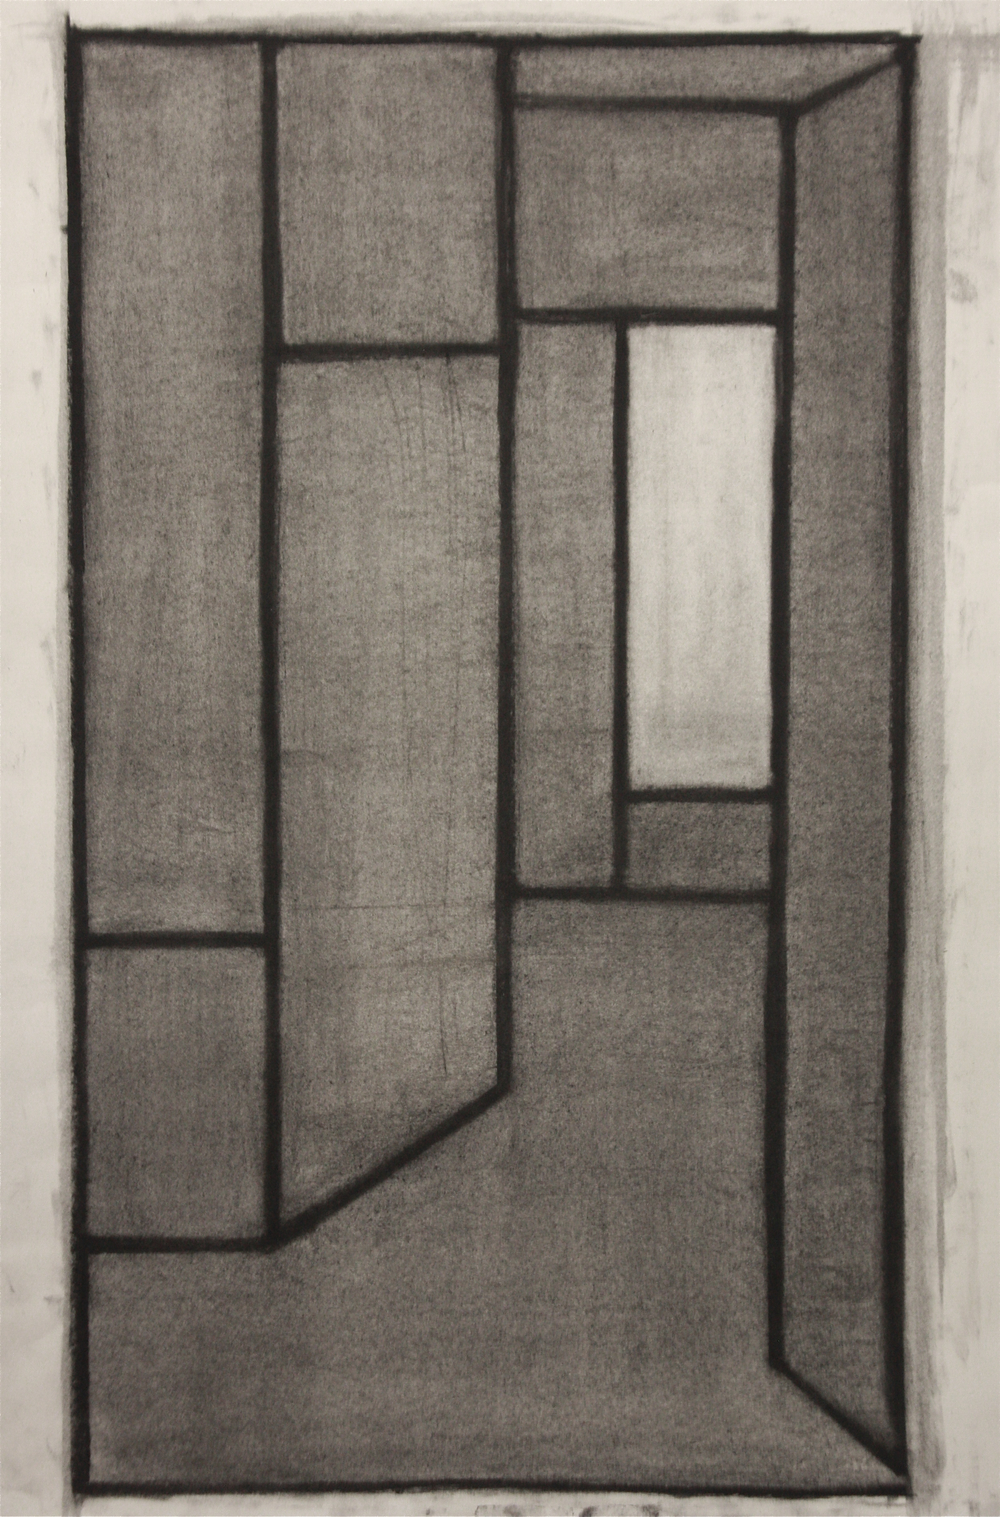 PS012, Charcoal on paper, 55x32.5cm